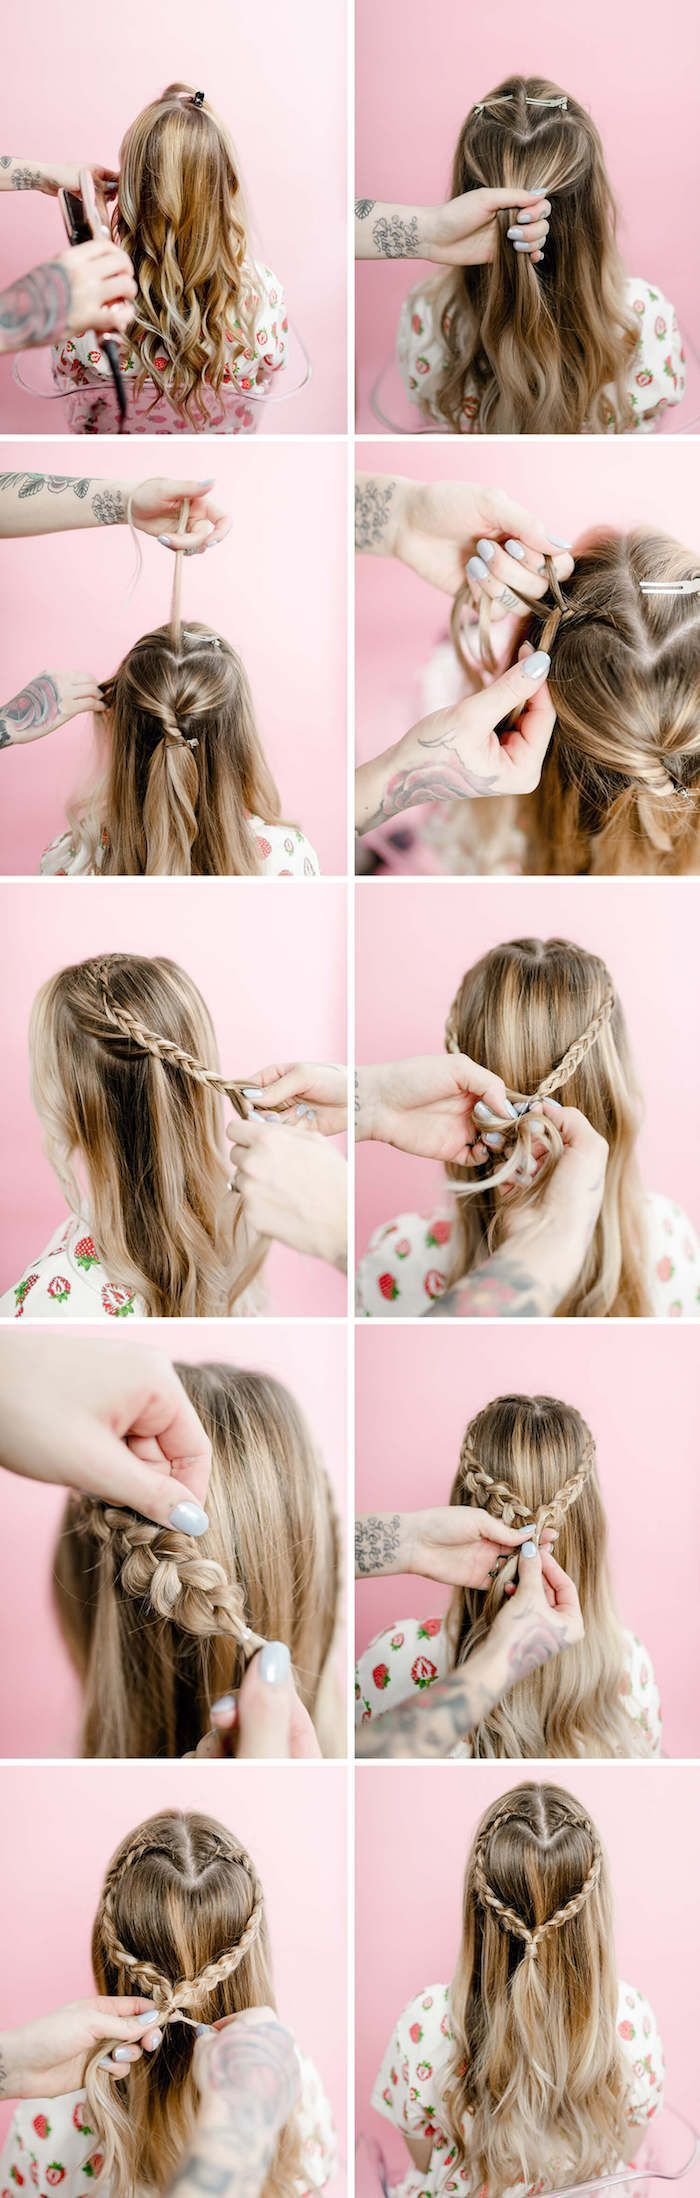 1001 Inspiring Ideas For Simple Self Made Braids Braids Hairstyle Hair Heart Hair Hair Styles Braided Hairstyles